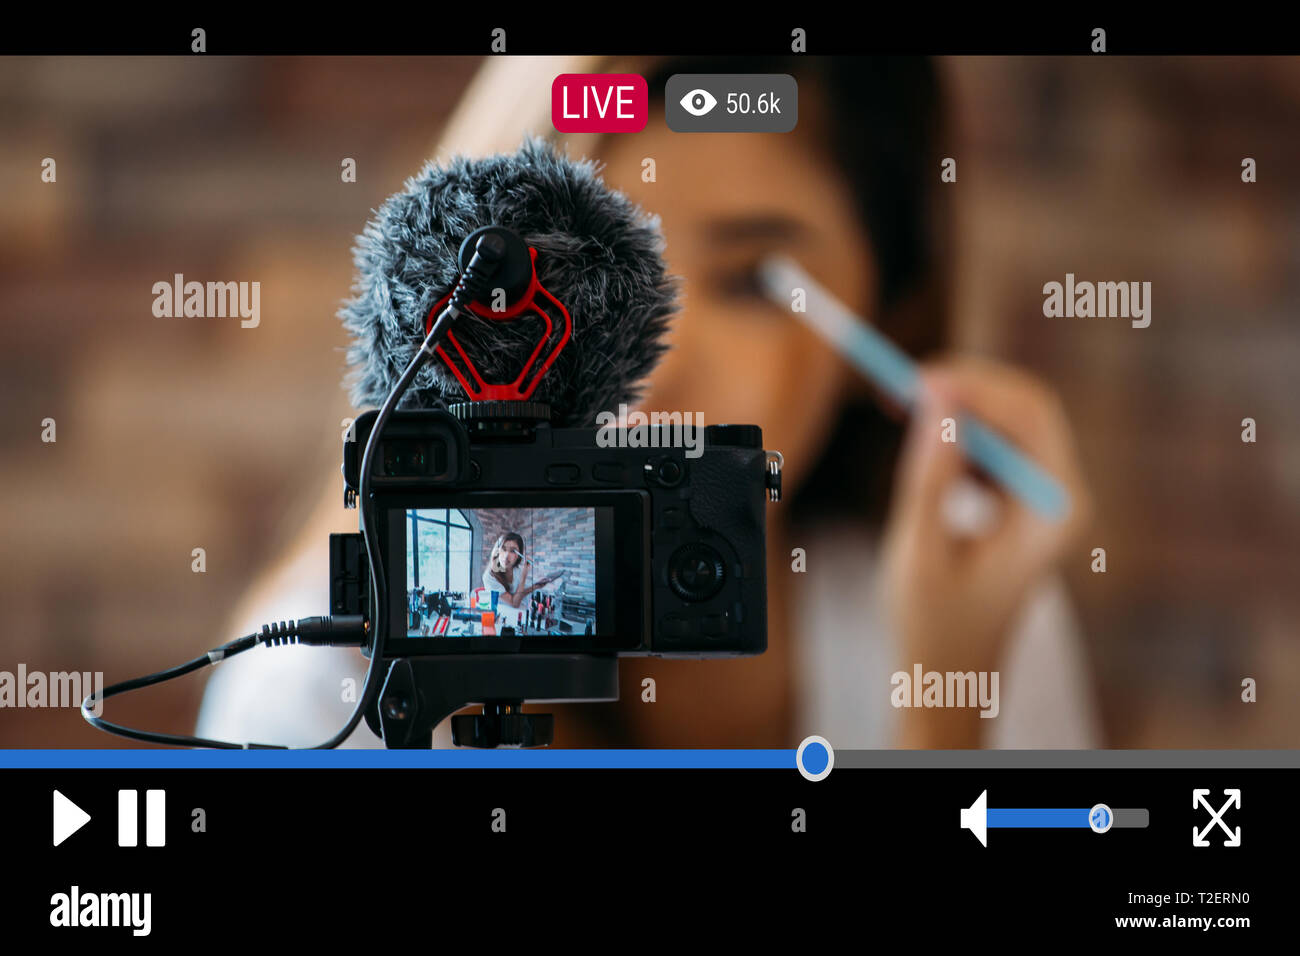 Young beautiful woman recording live stream video for makeup and cosmetics business purpose online with video player interface - Stock Image